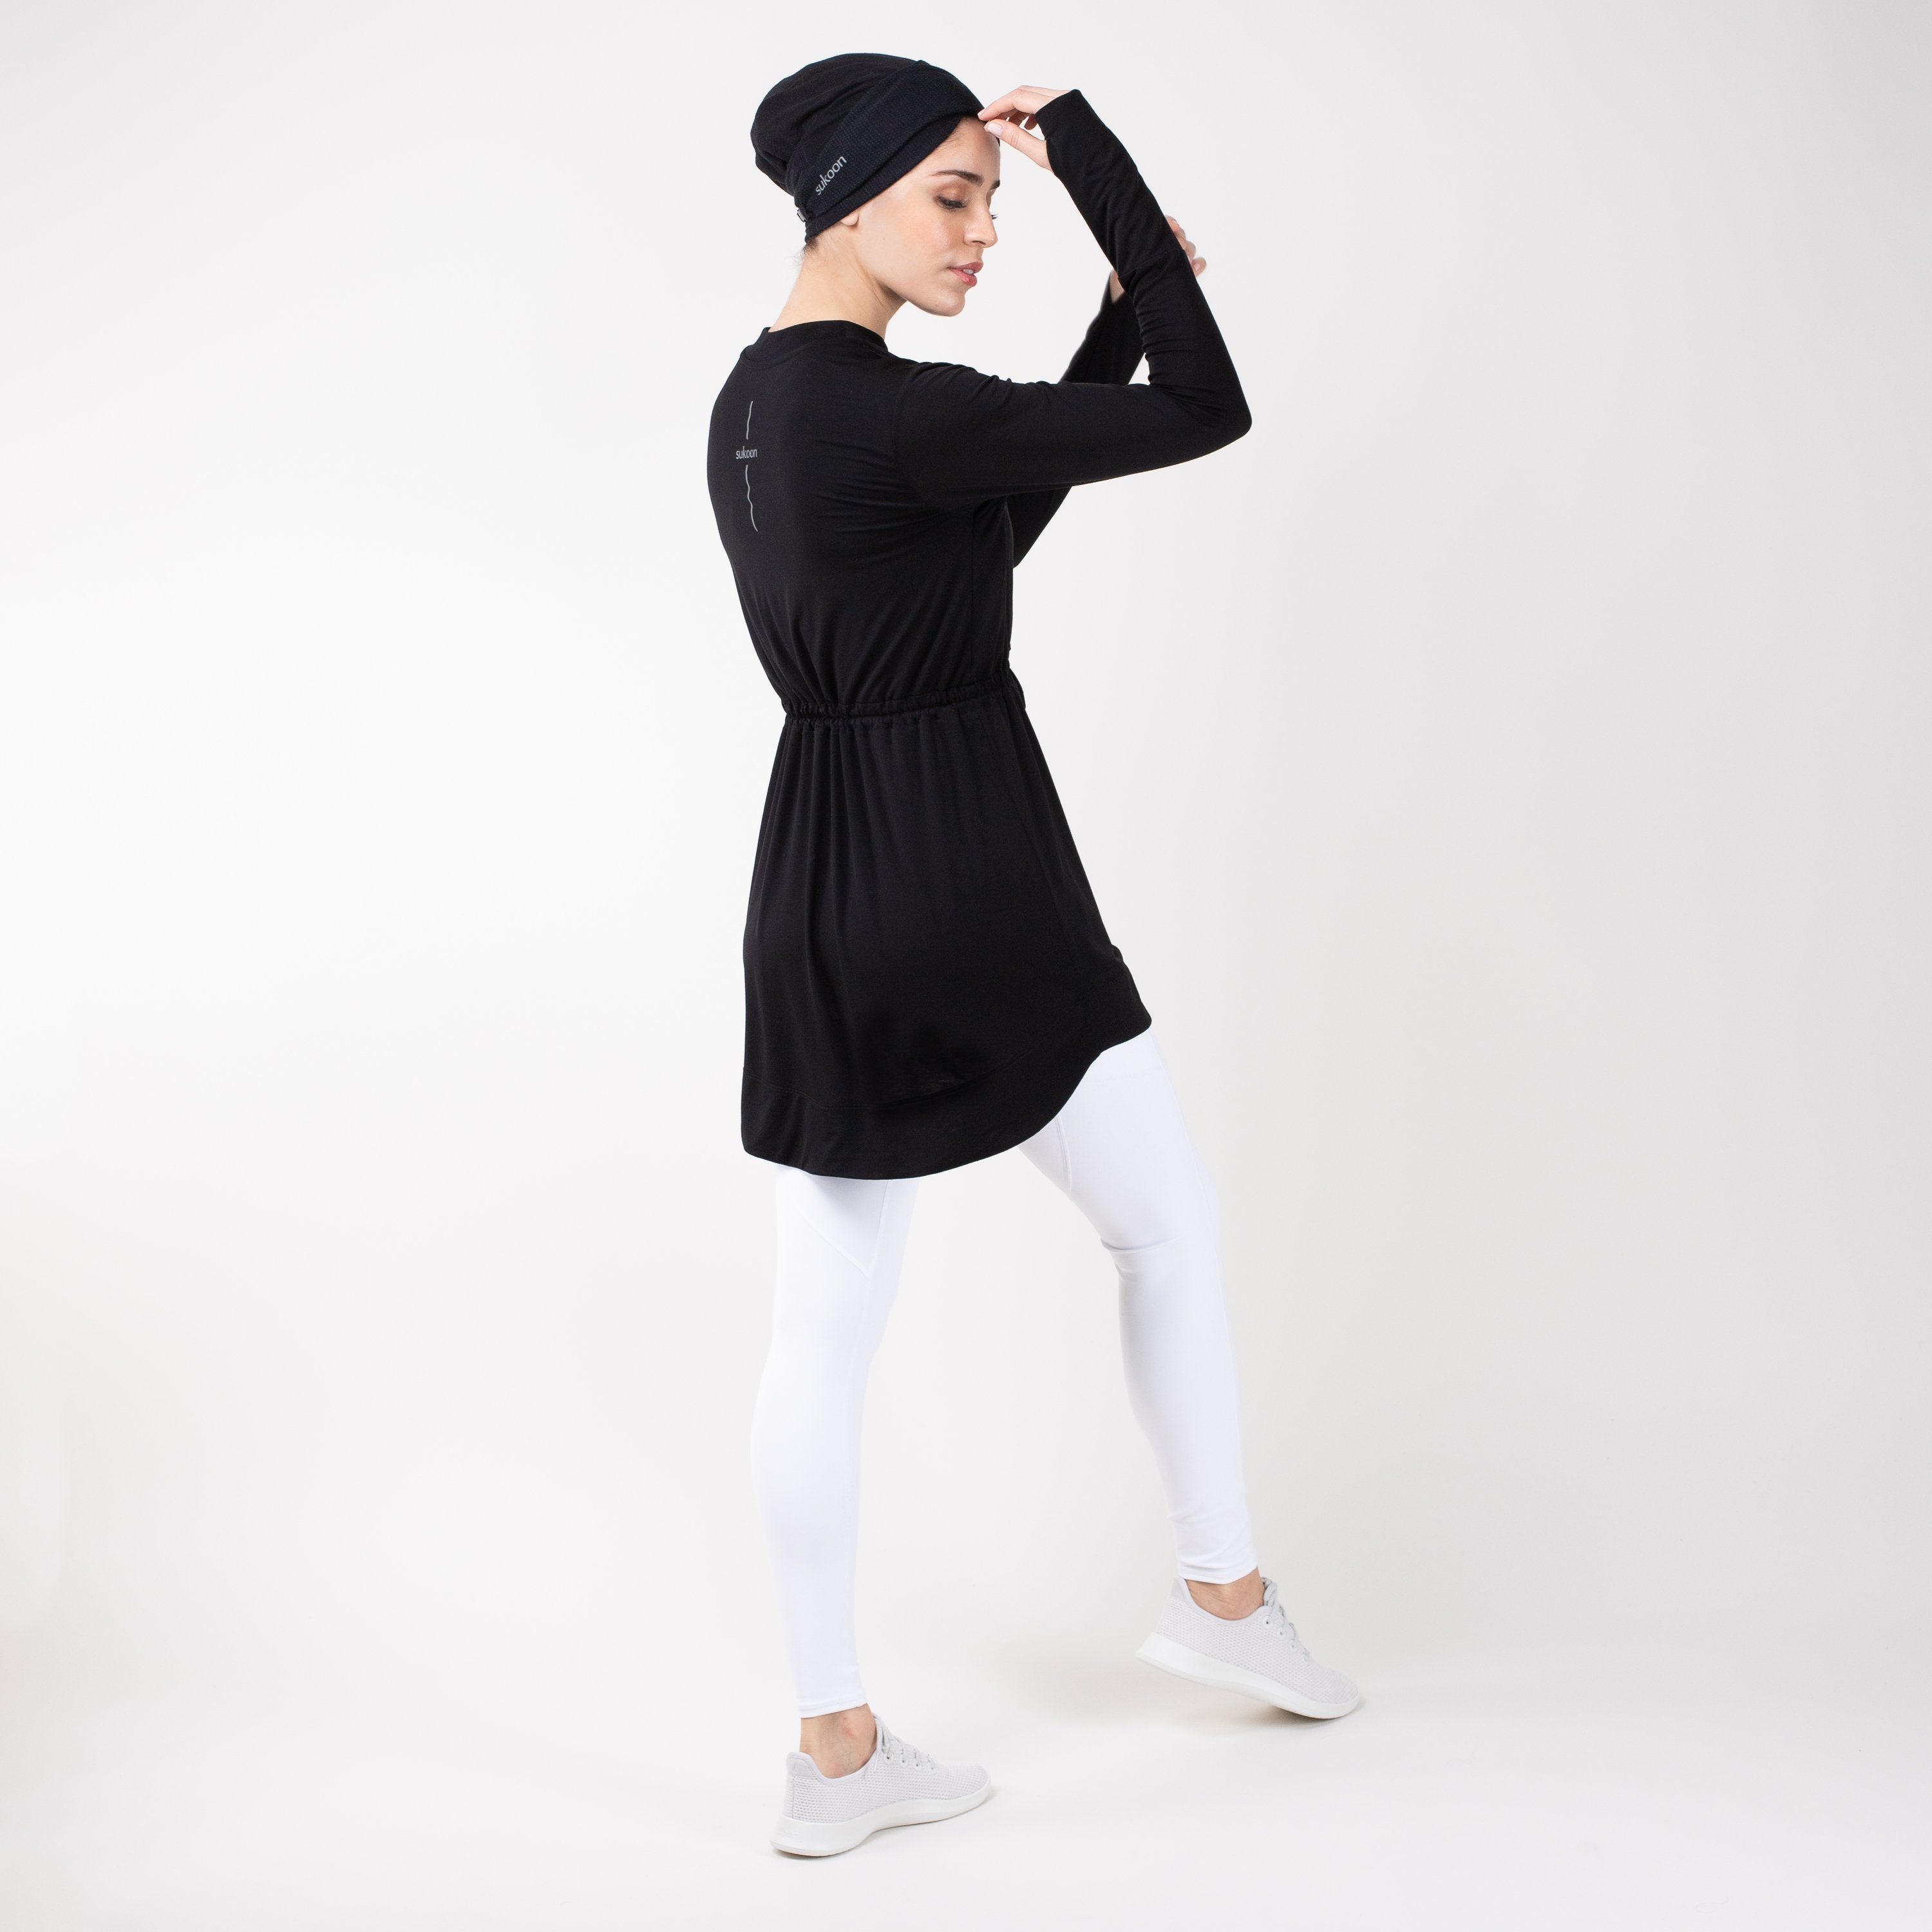 Back of woman in modest, black HAWA drawstring tee shirt and white leggings in front of a white backdrop.